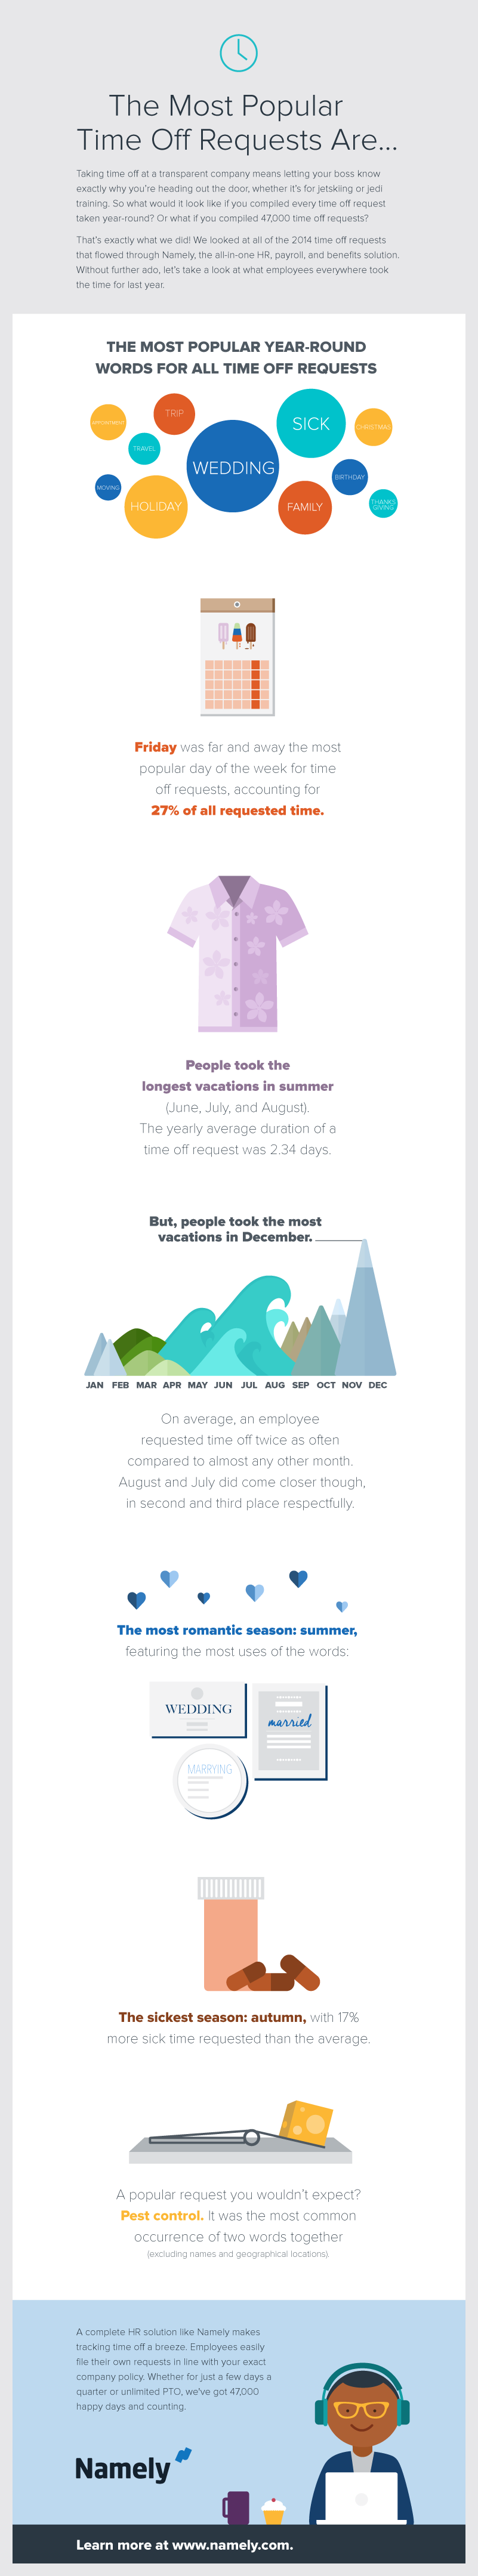 namely: employee time off infographic